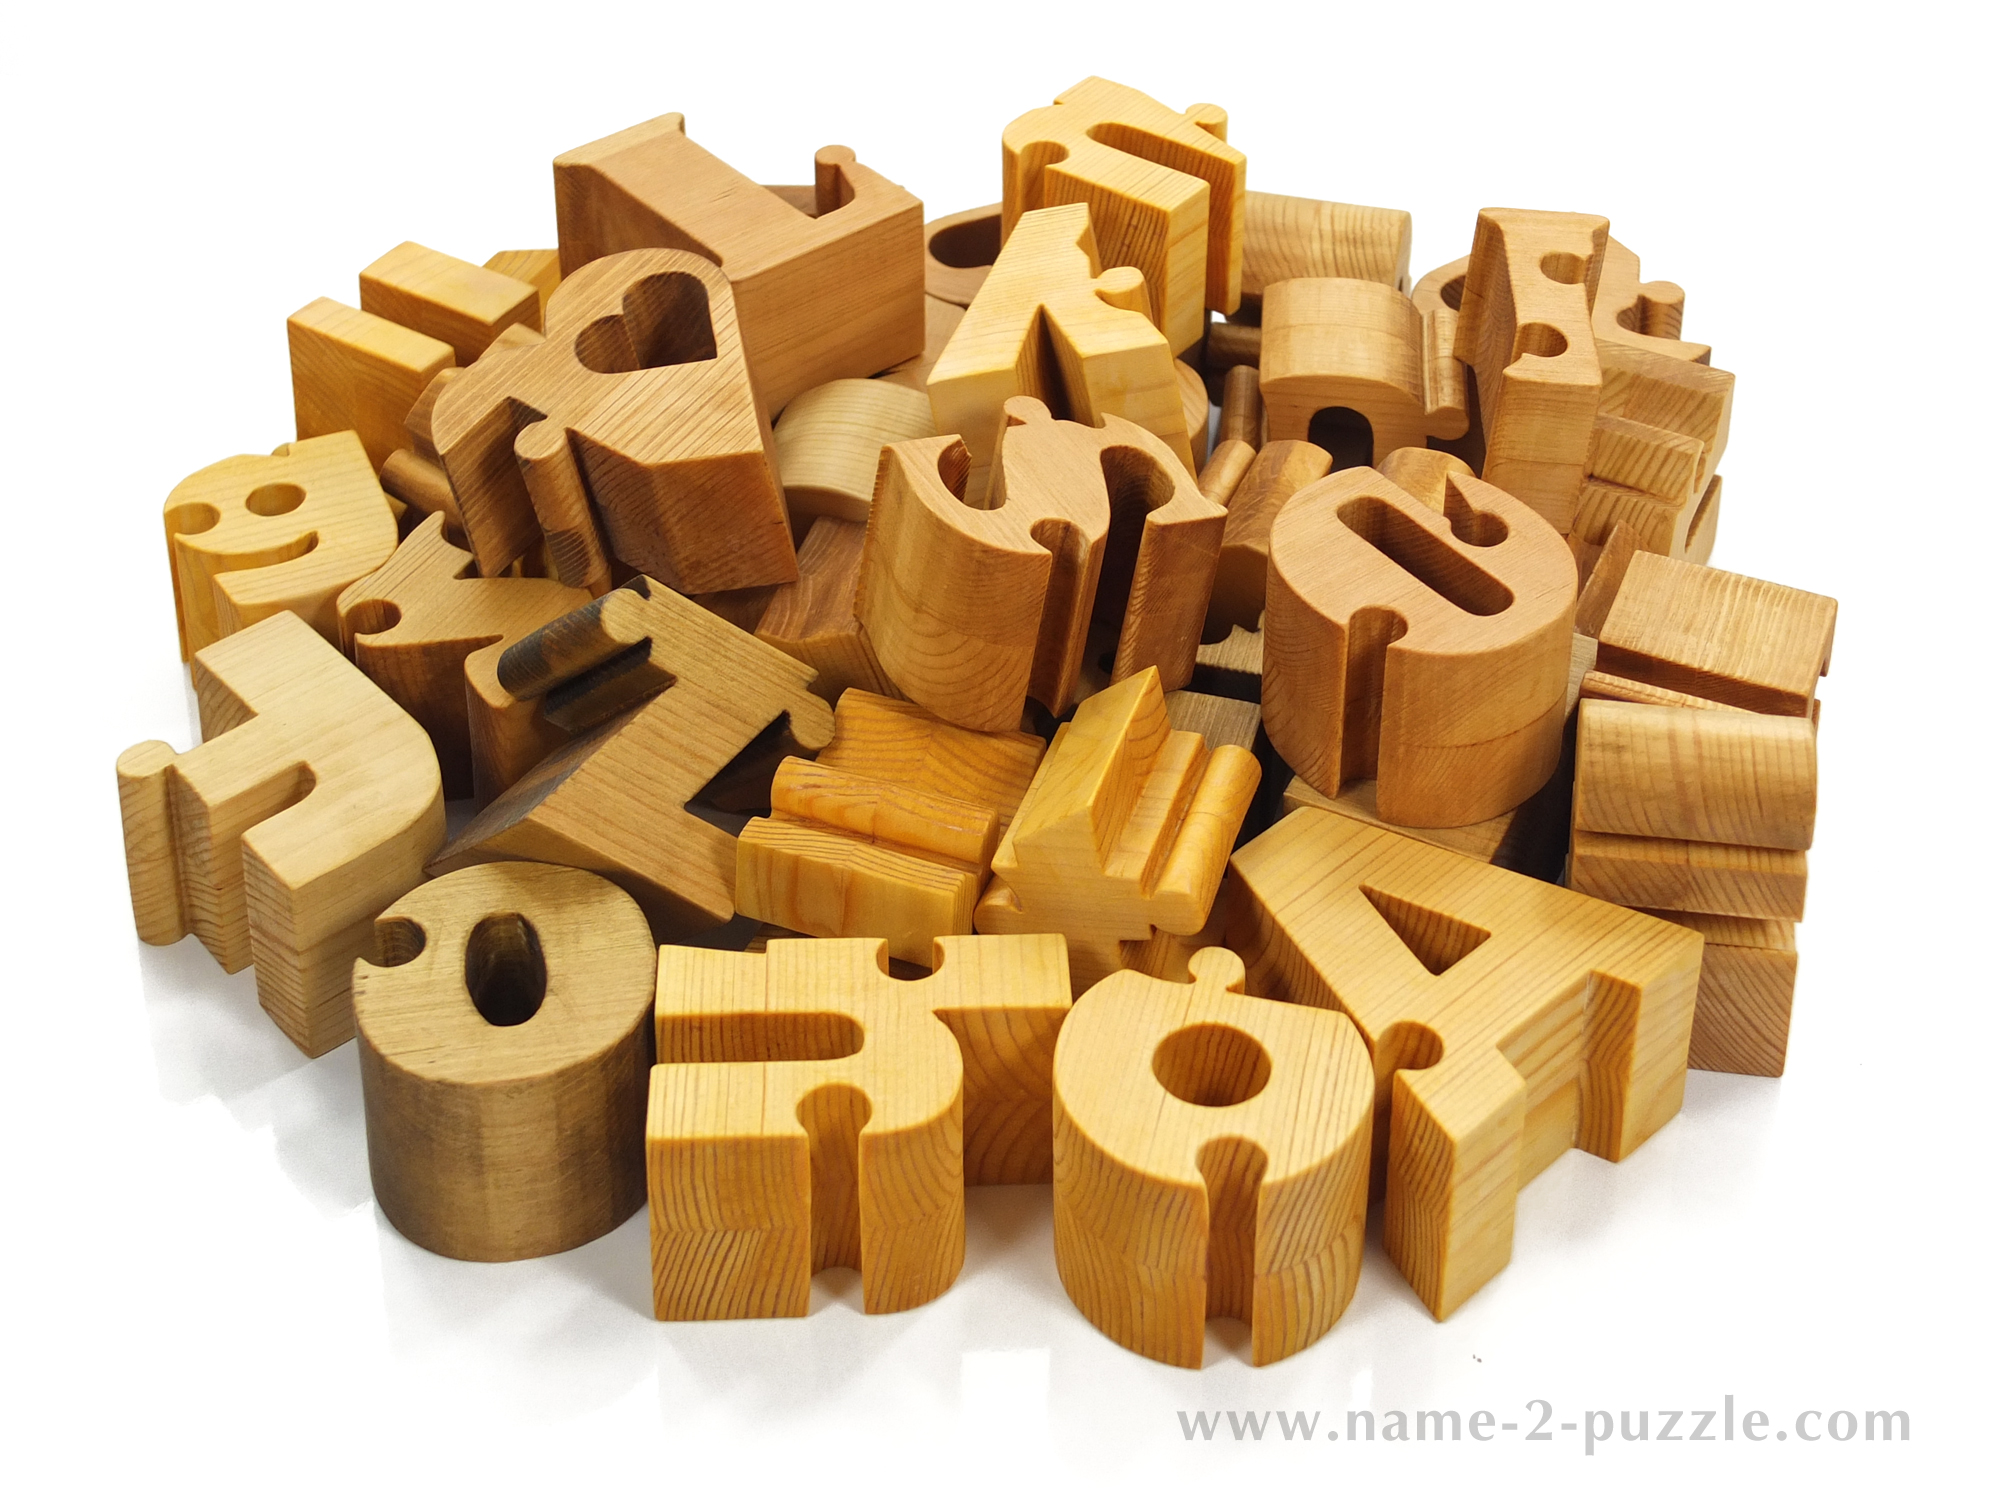 two names puzzles unique 3d name puzzles best personalized gifts